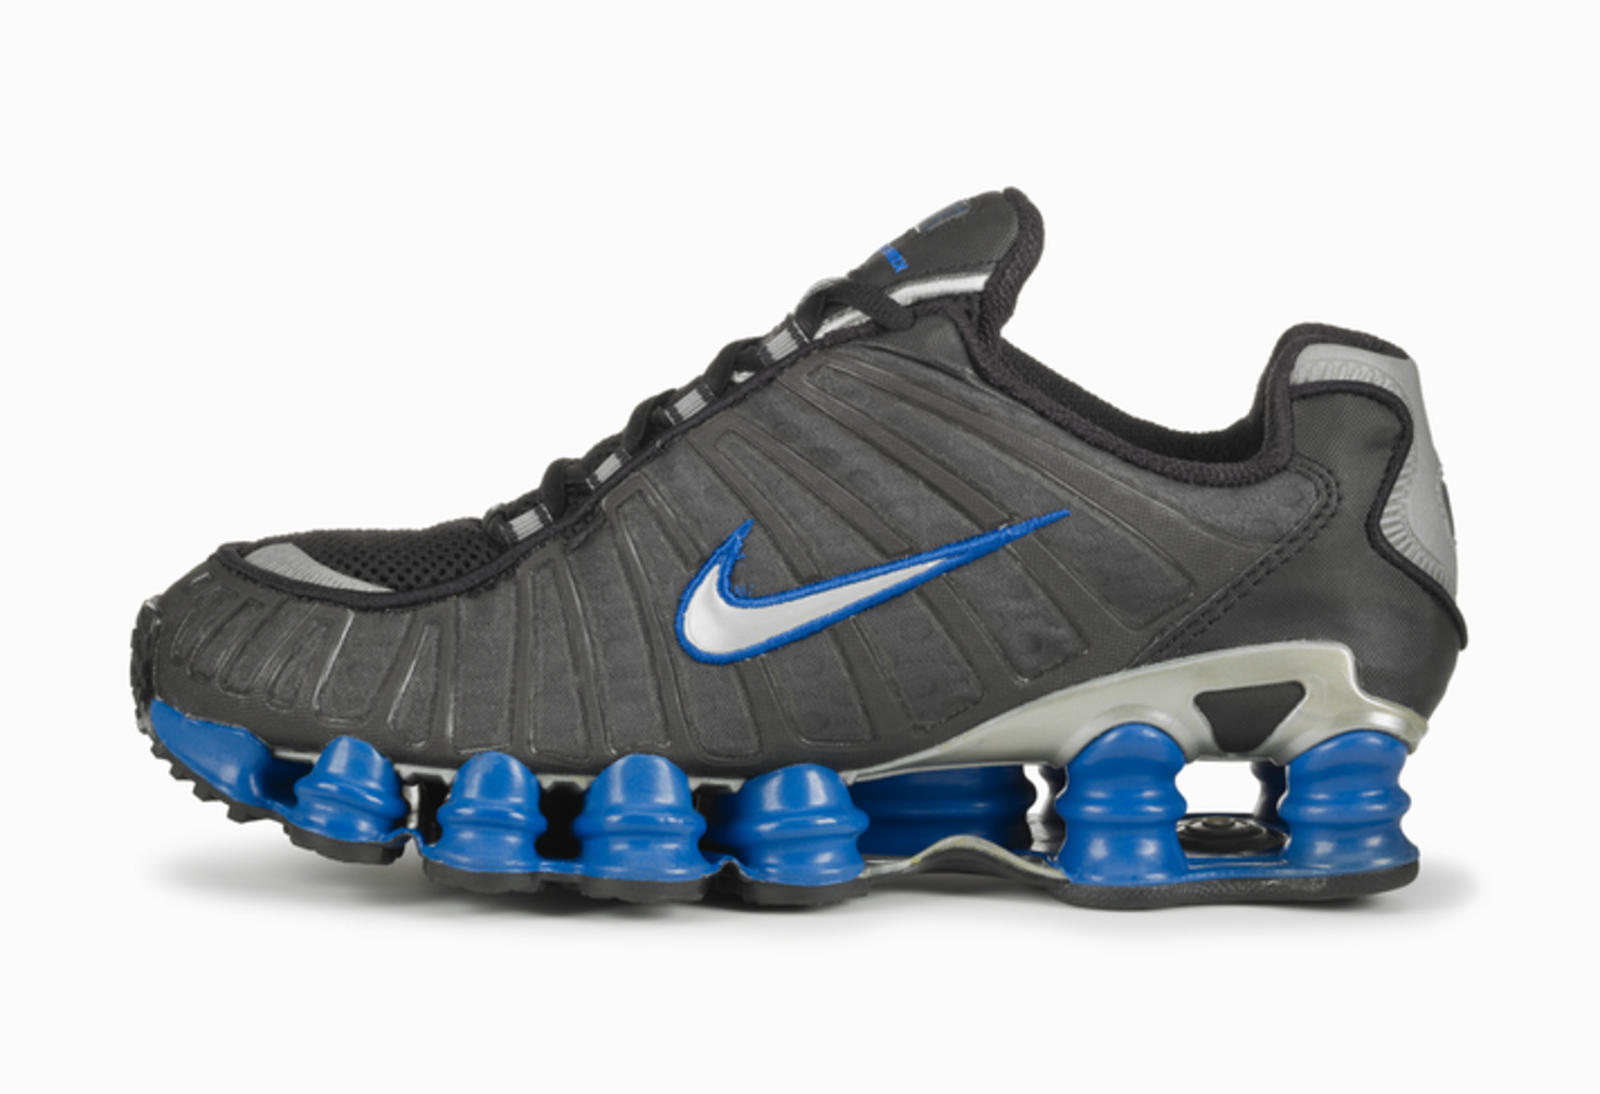 separation shoes c46a5 7cab8 The first Shox product,the R4,hit shelves in 2000. nike shocks. Chaussures  ...